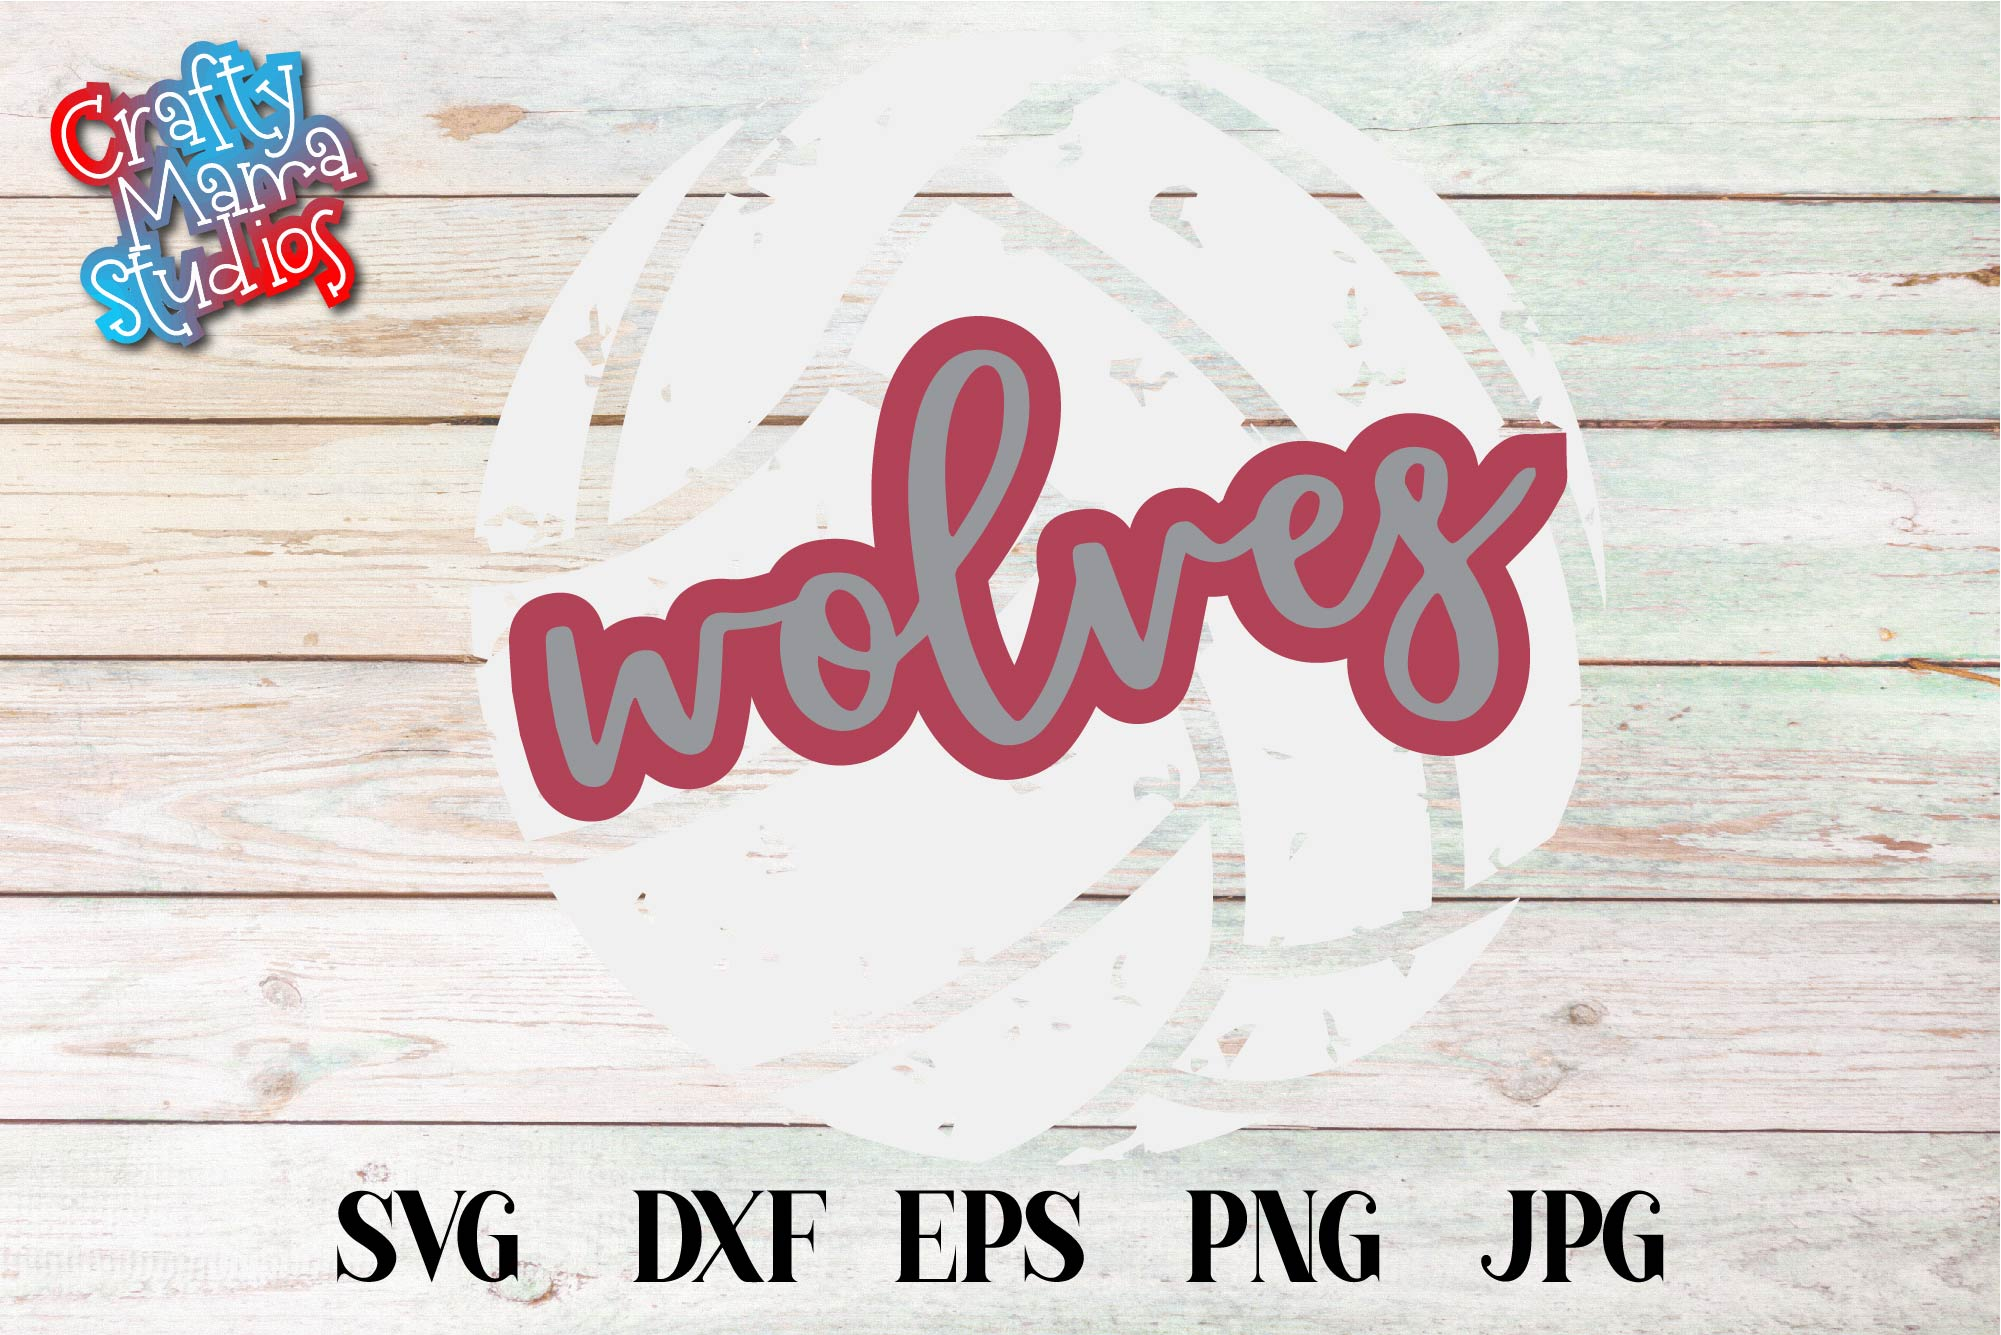 Sports SVG, Wolves Volleyball SVG, Sports Sublimation example image 2